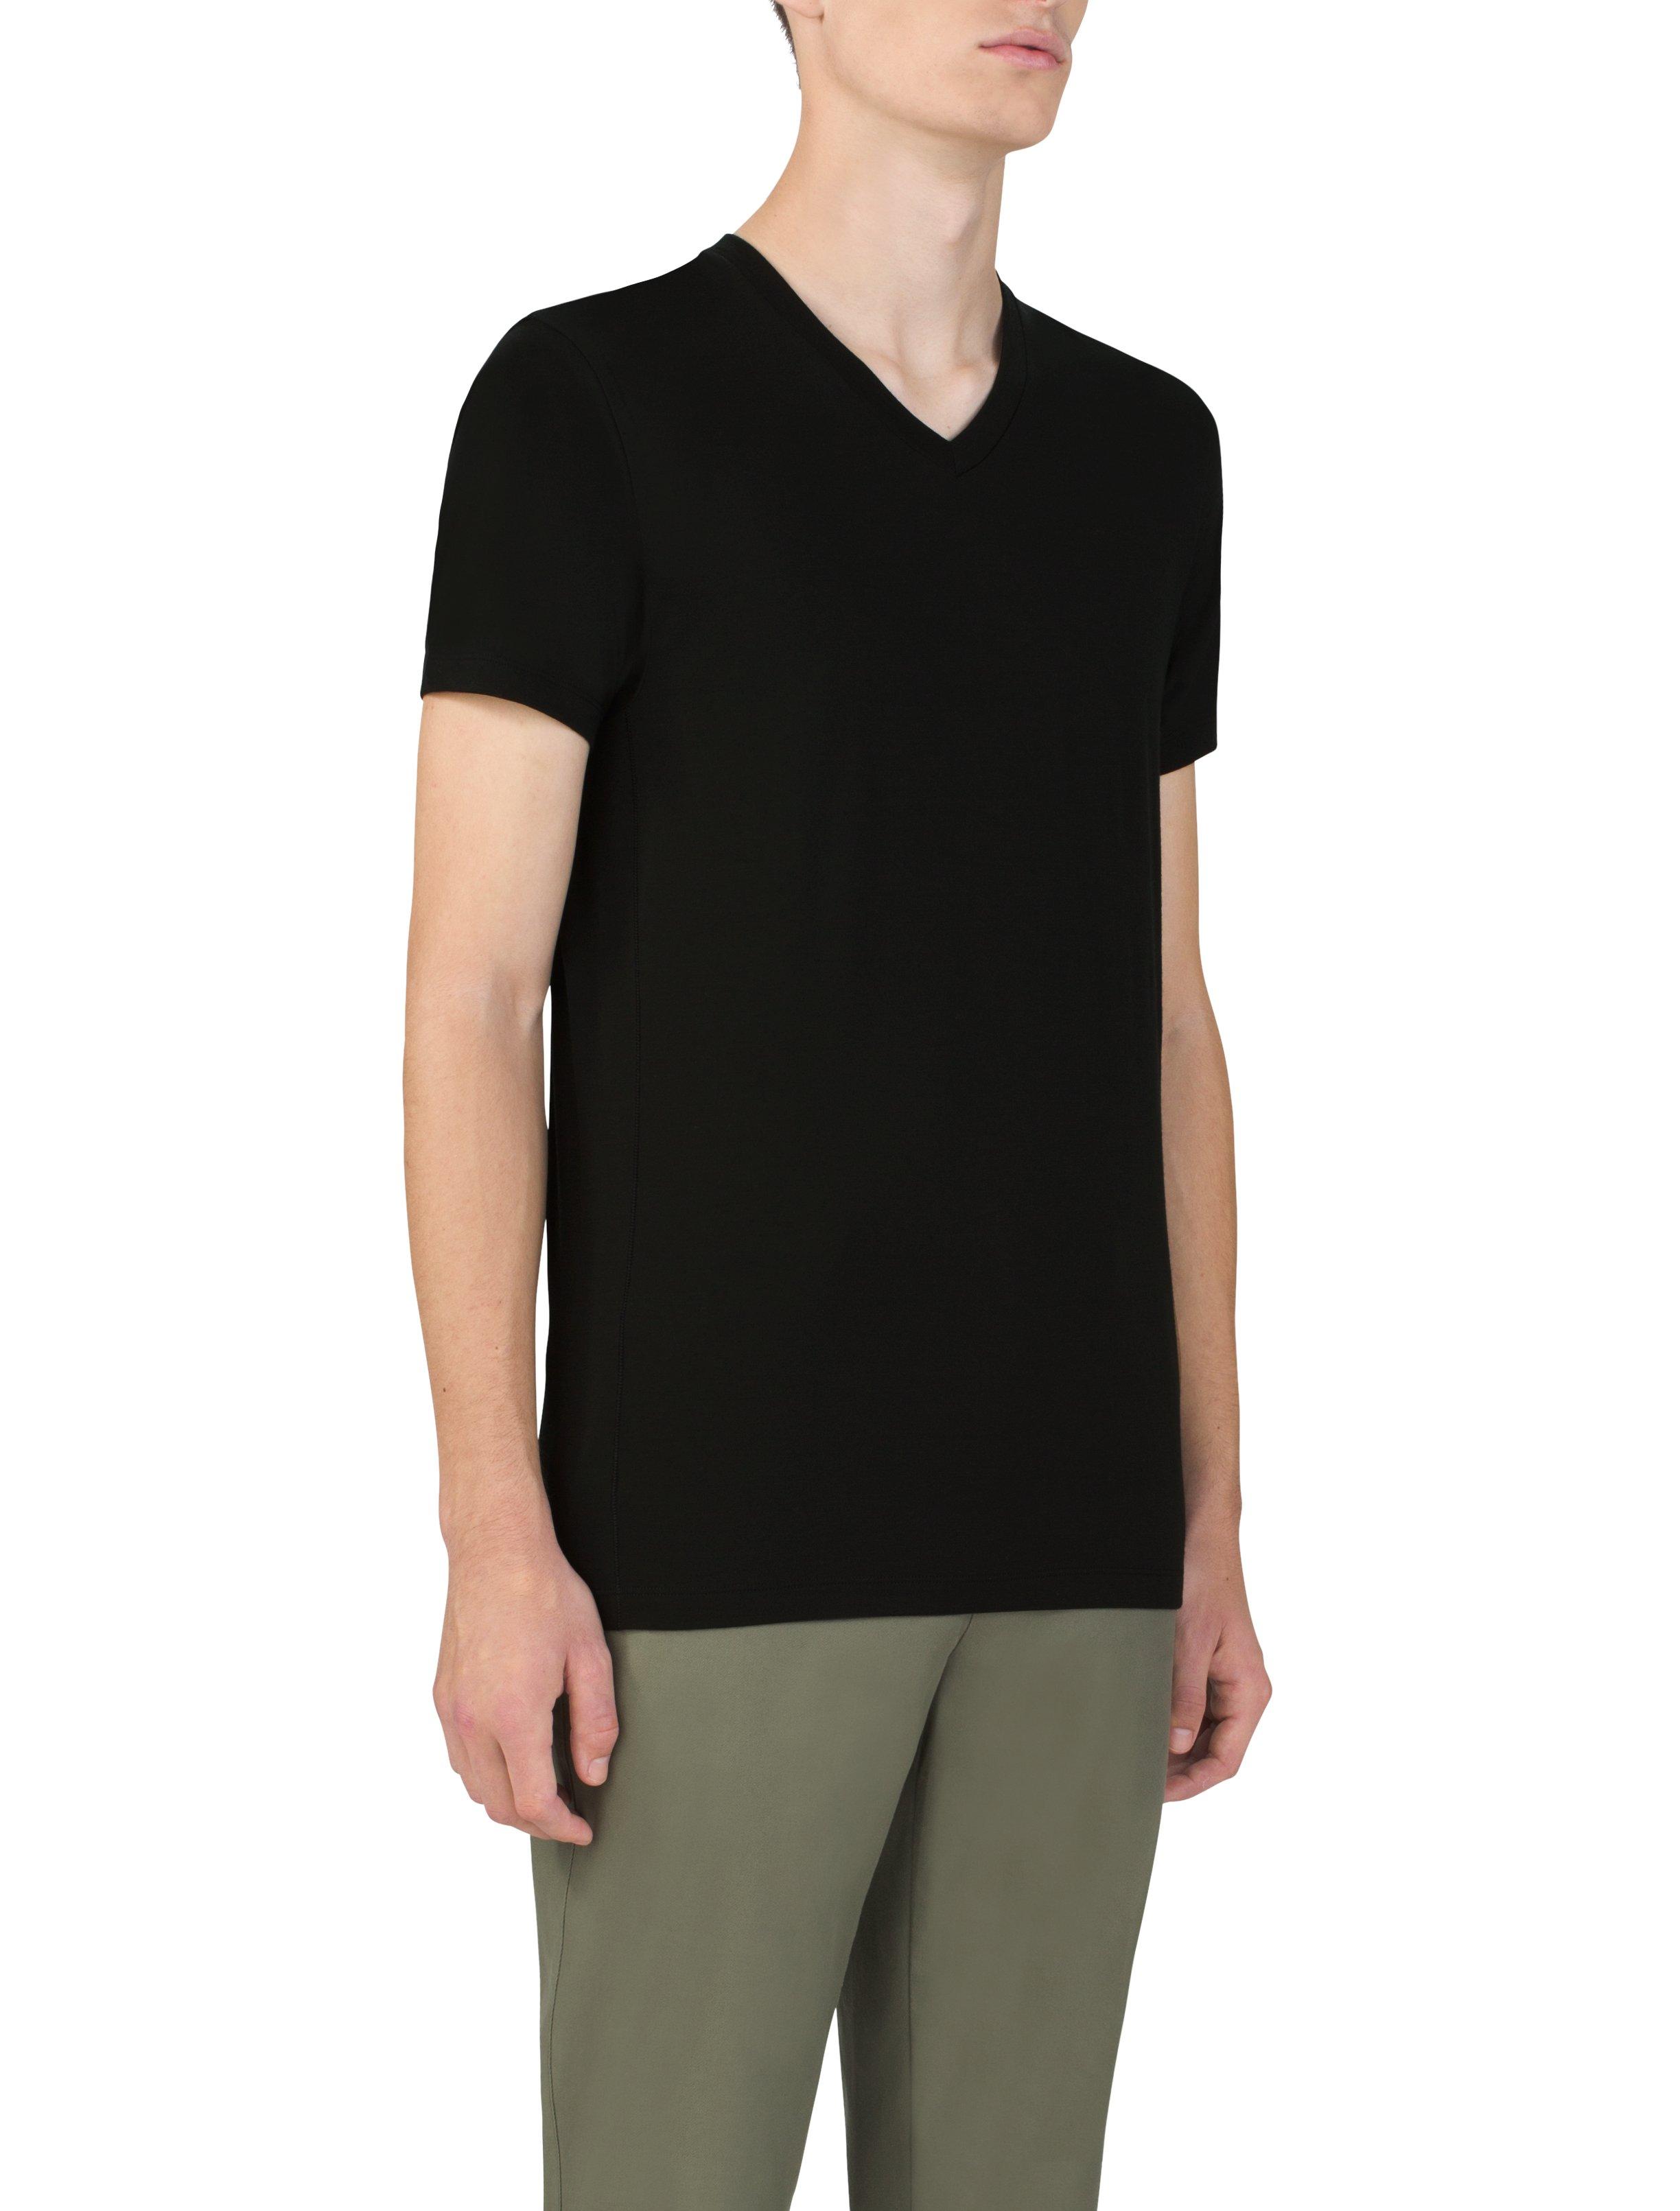 Men's UAS Prime Short Sleeve V-Neck, Black